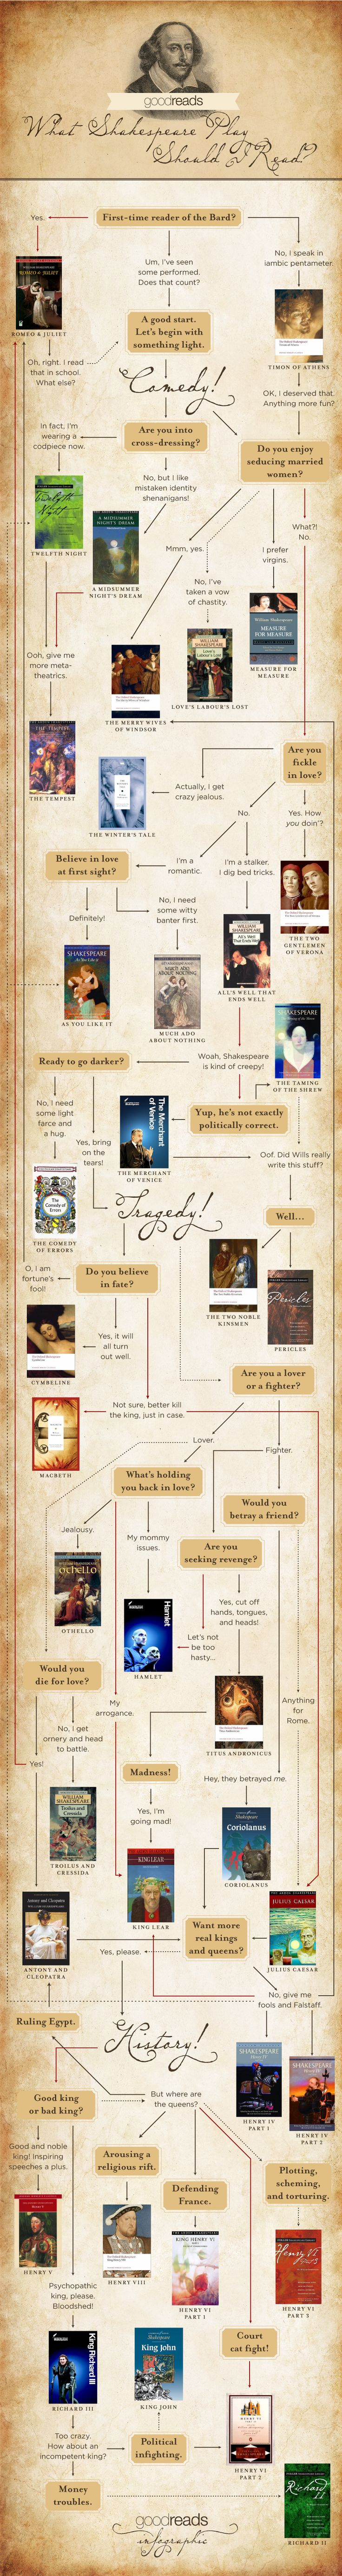 """What Shakespeare Play Should I Read?"" a Goodreads infographic"